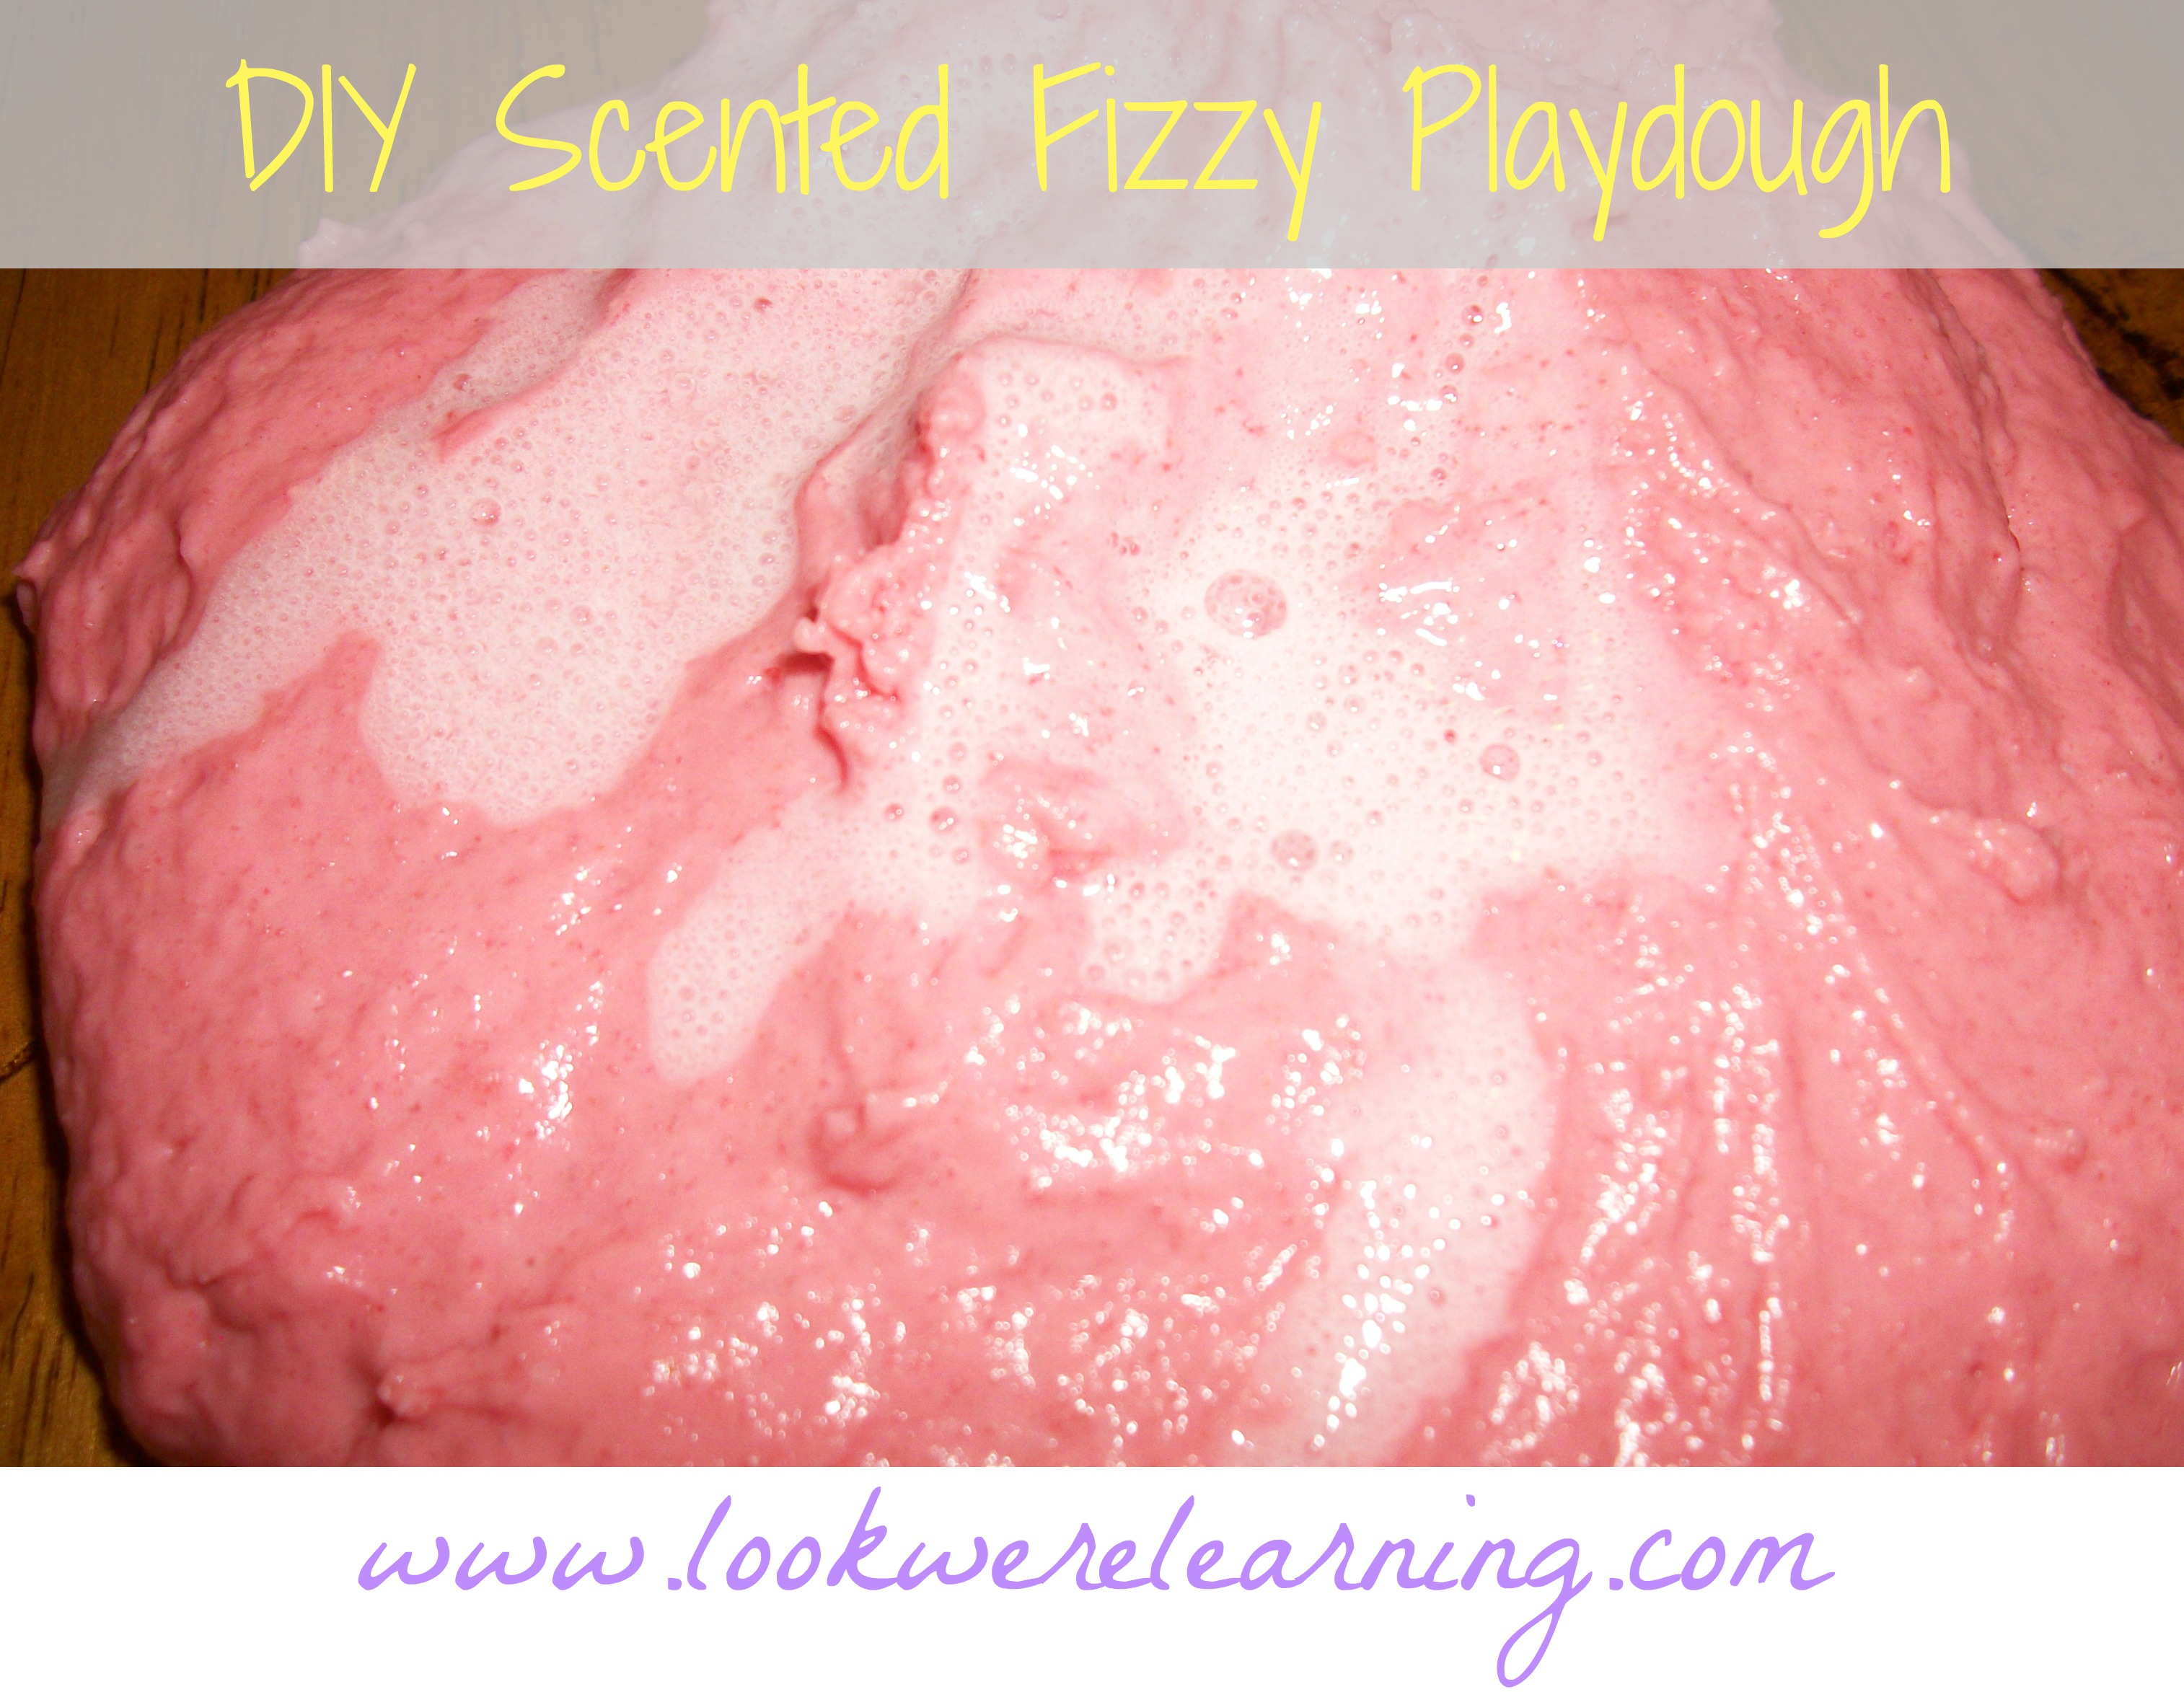 DIY Scented Fizzy Playdough - Look! We're Learning!